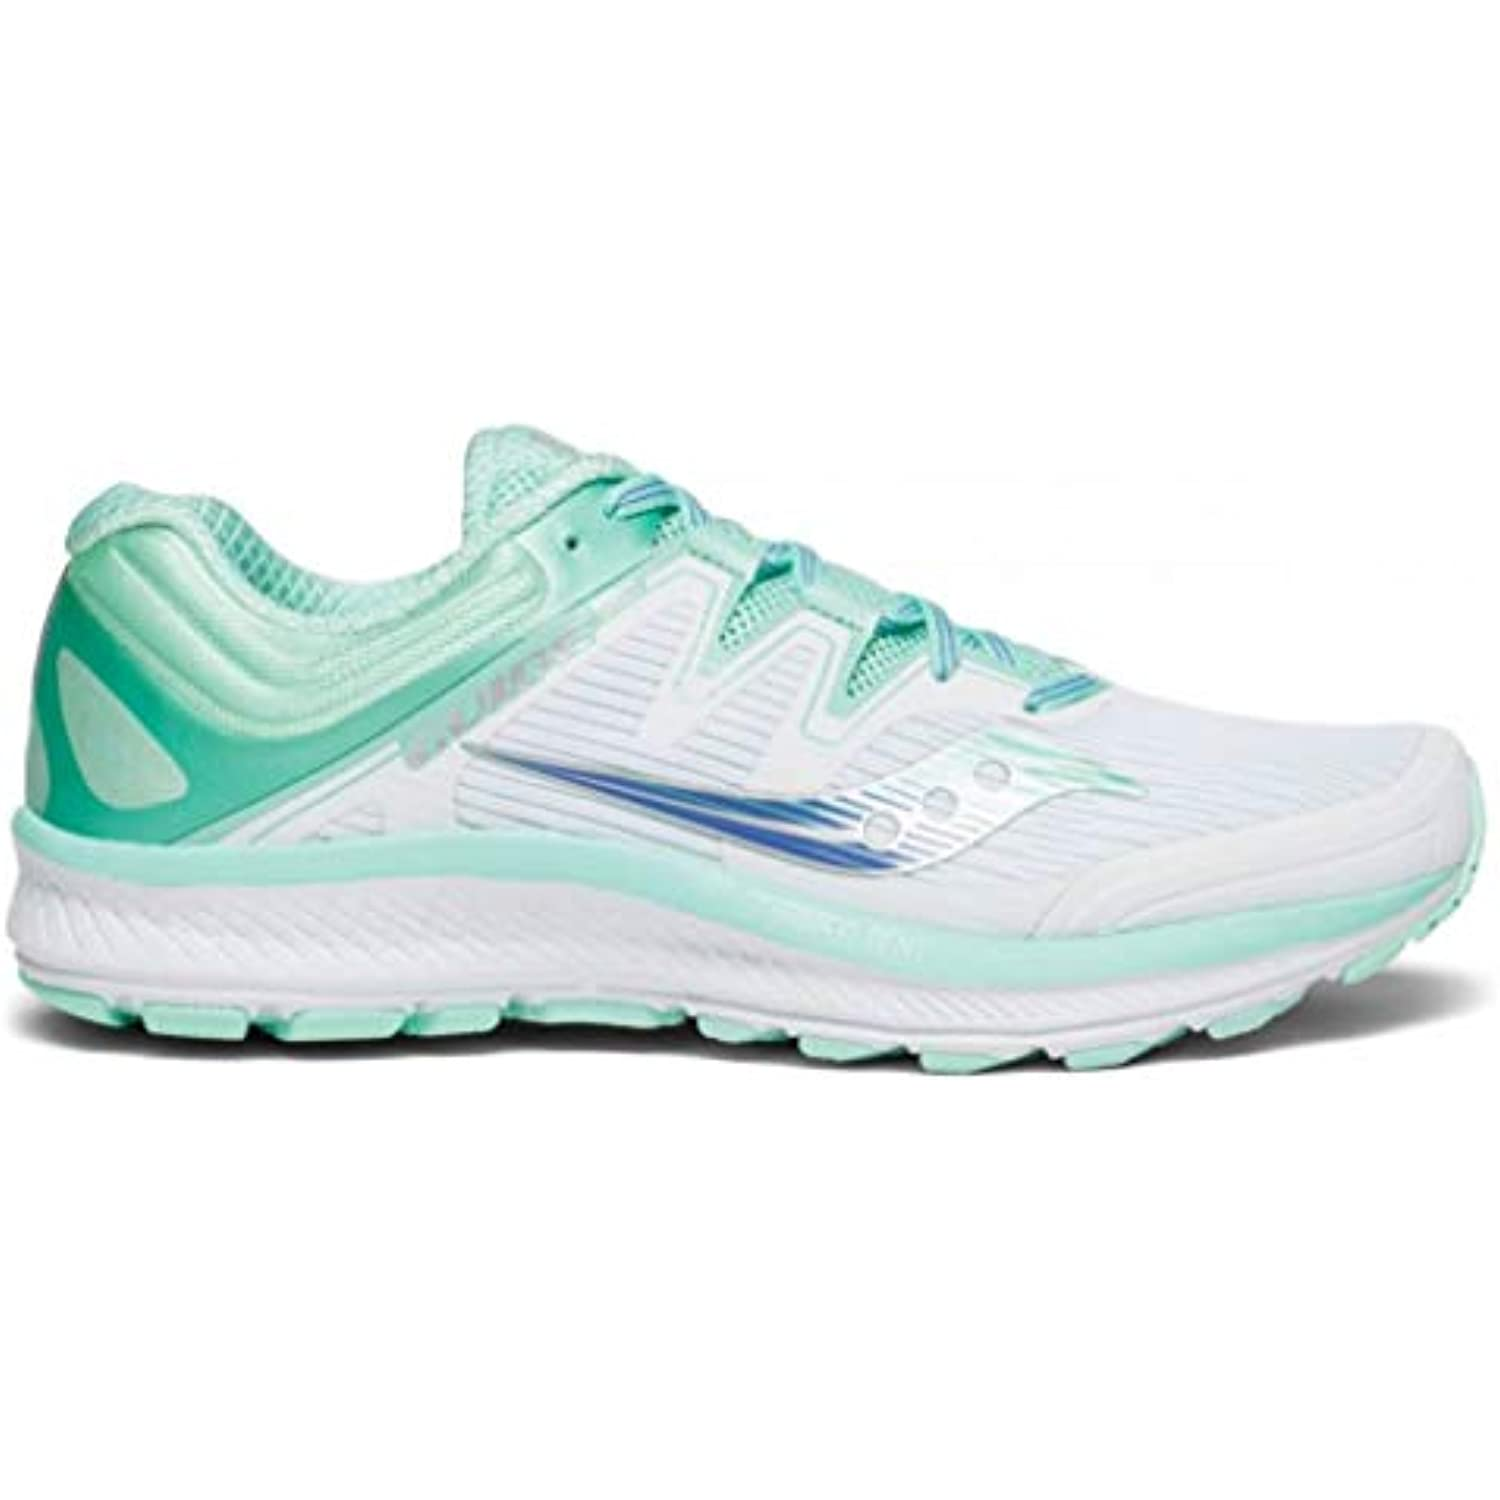 Saucony - Guide  Iso   Guide B07D7R1XB8 - dd46bd